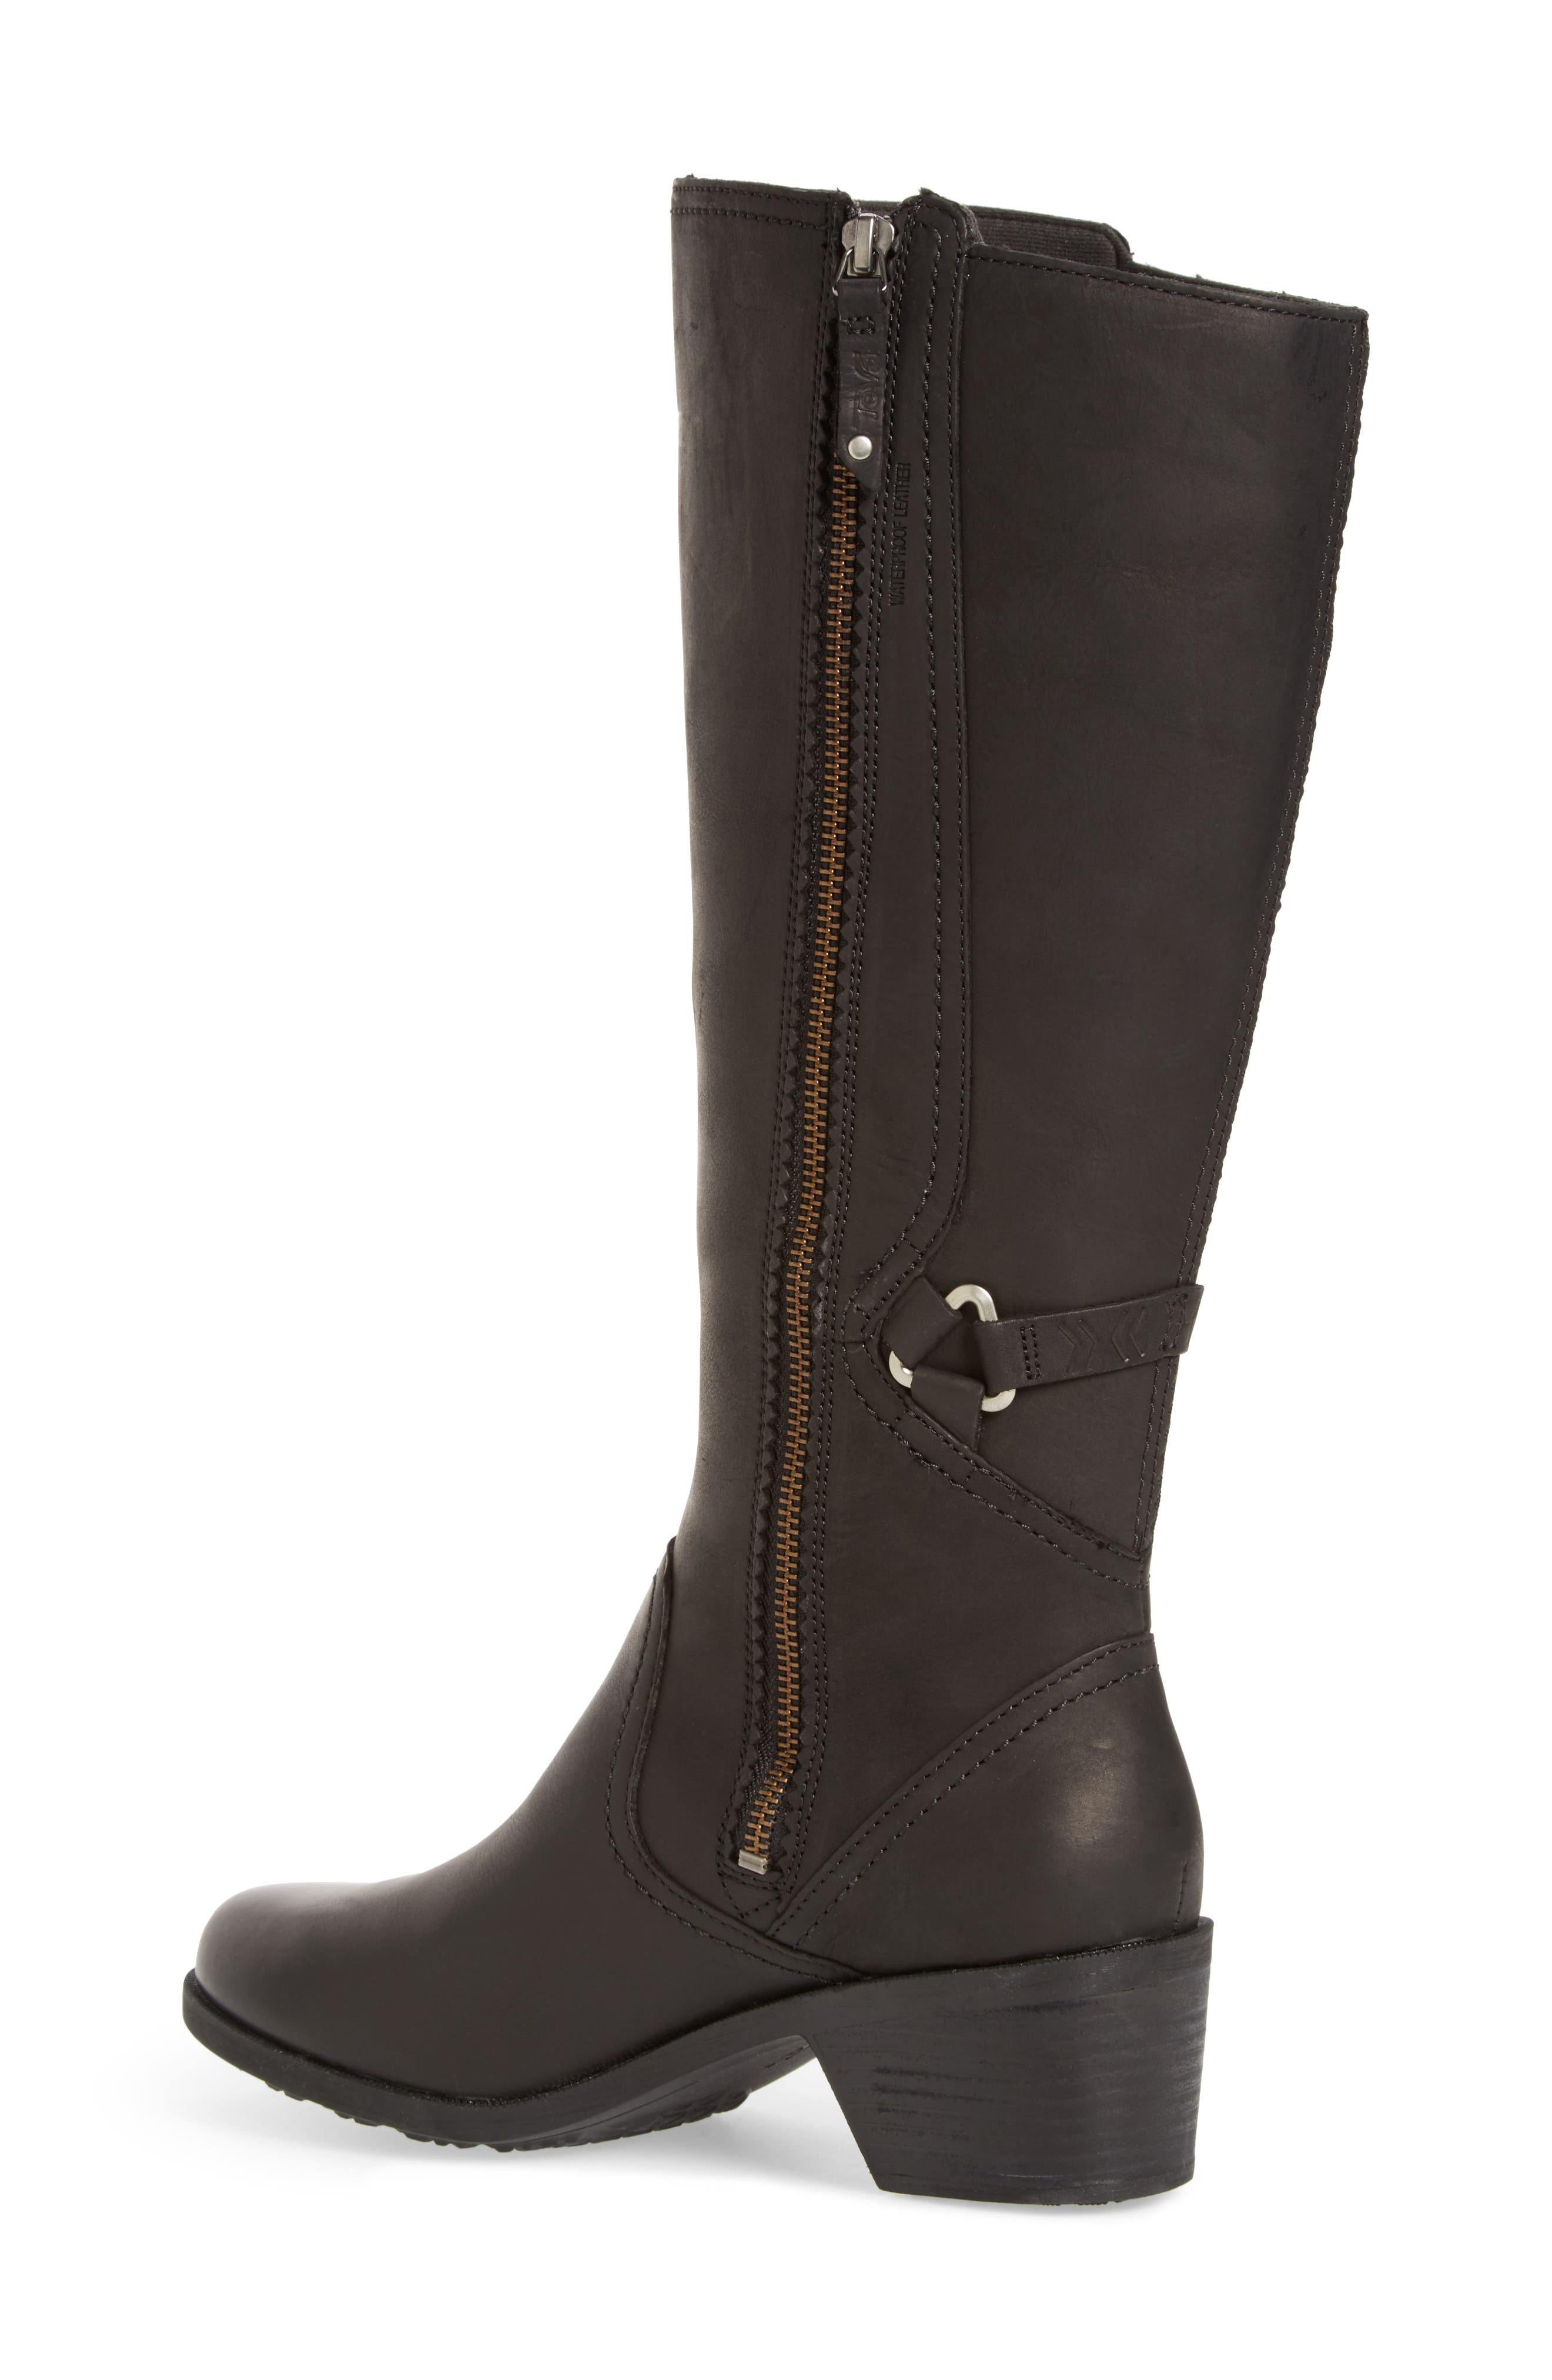 Foxy Waterproof Boot,                             Alternate thumbnail 2, color,                             Black Leather